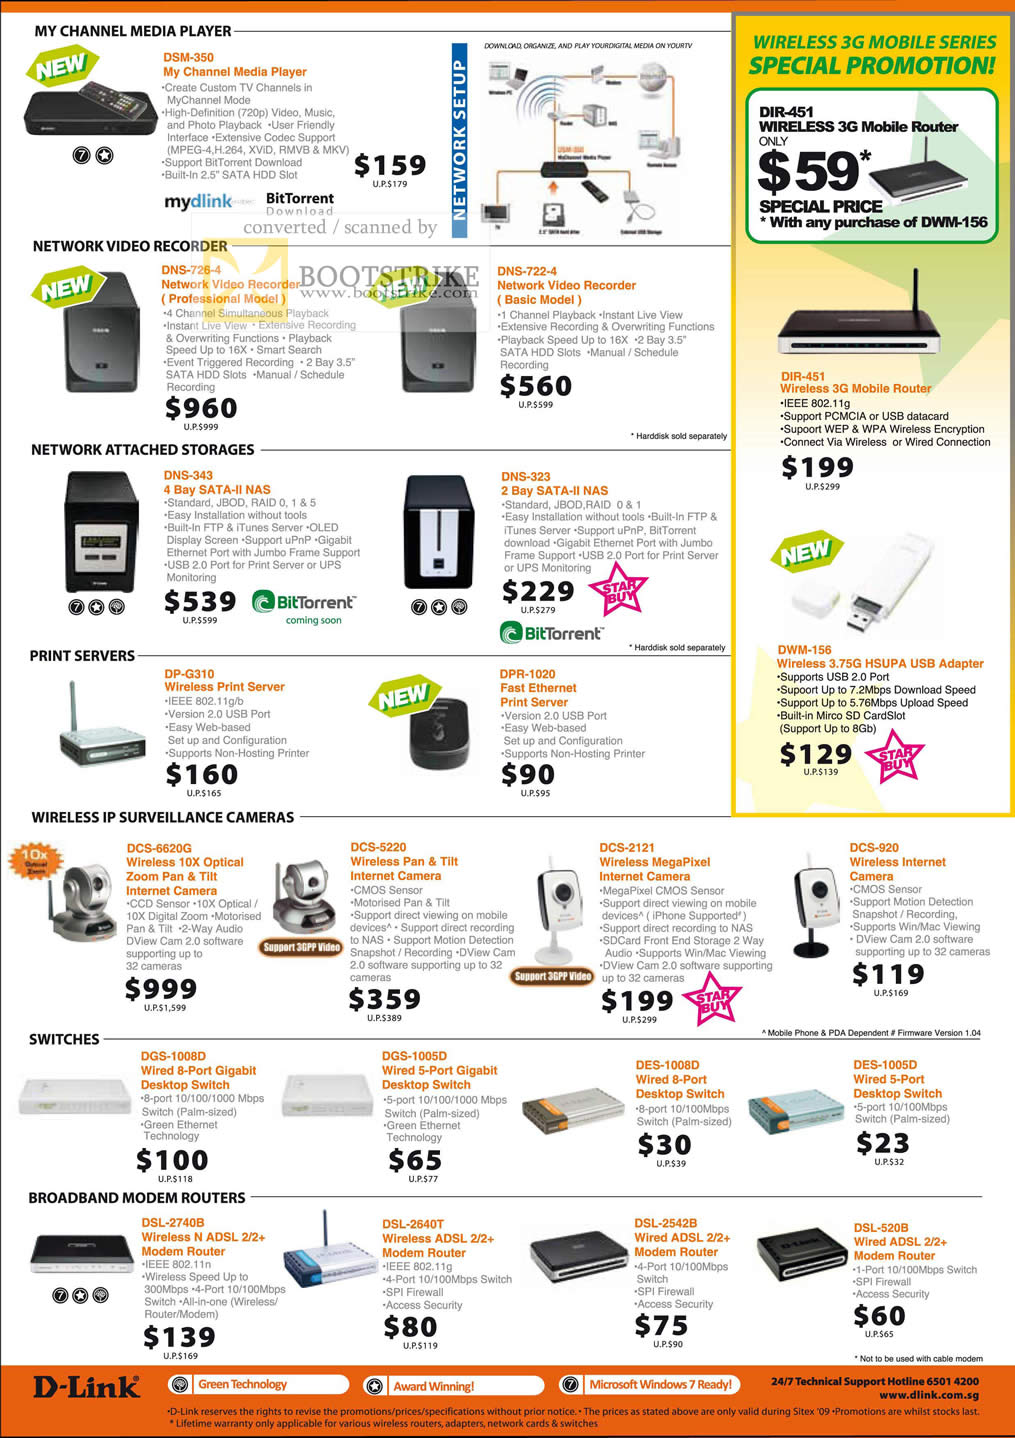 Sitex 2009 price list image brochure of D-Link Media Player Video Recorder NAS 3G Wireless Camera Switches Routers Modem